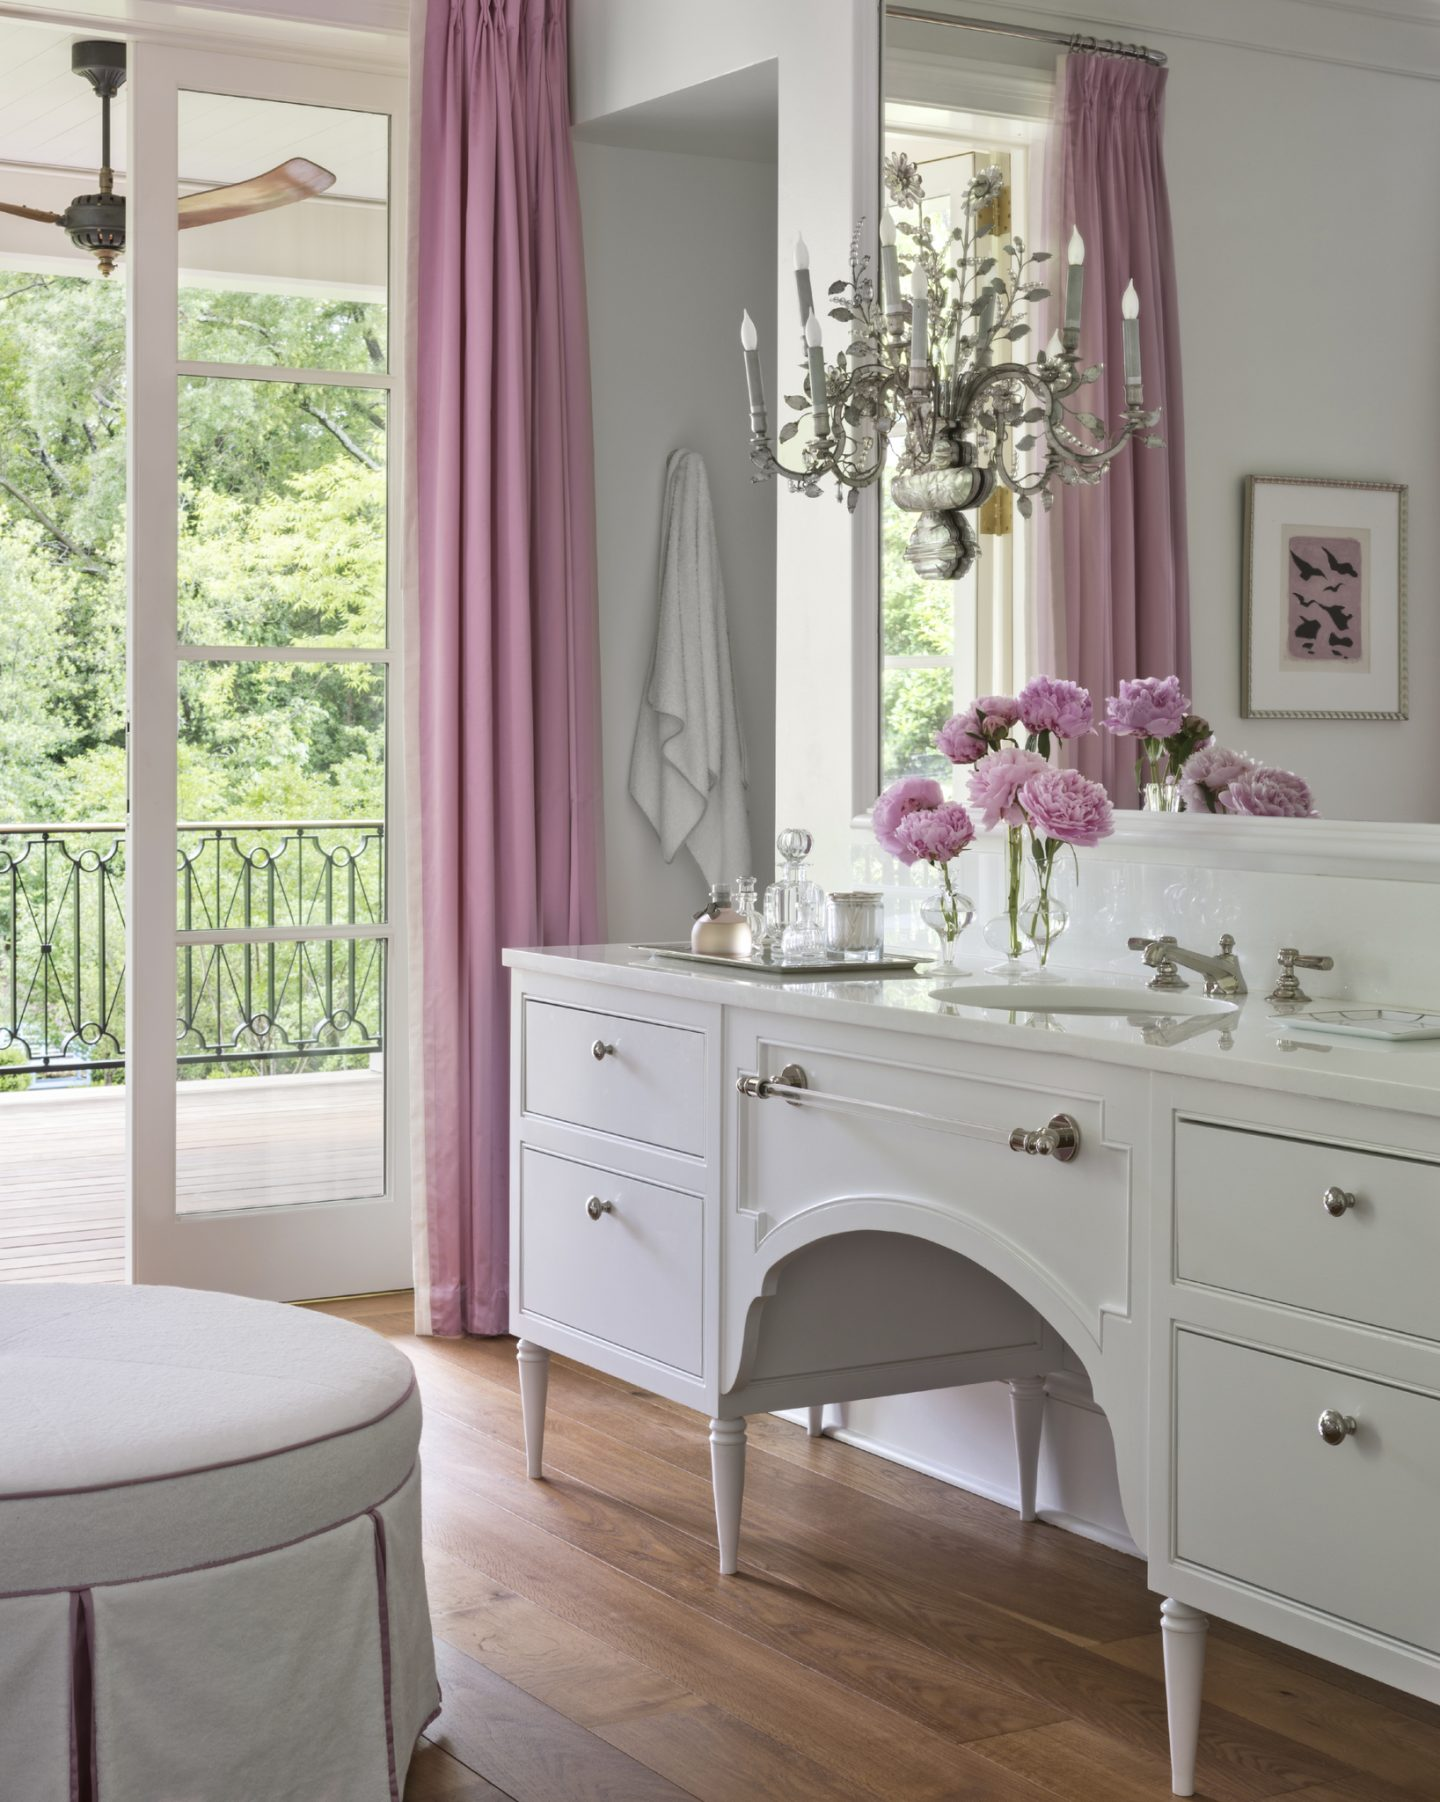 Exquisite and luxurious white bathroom design by Suzanne Kasler with vintage sideboard style vanity and cheerful pink accents.